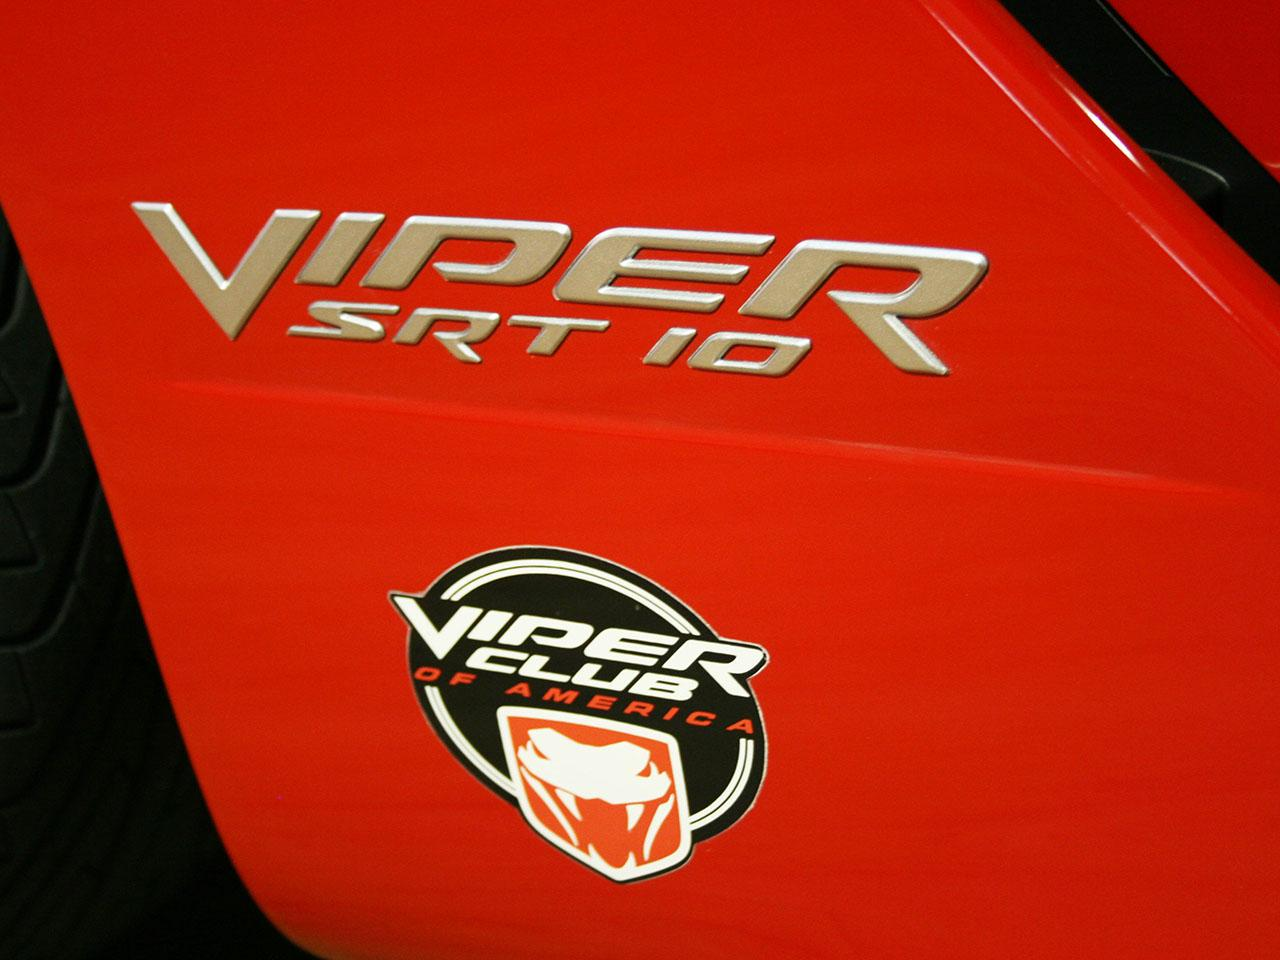 2006 Dodge Viper Srt 10 Vca Edition